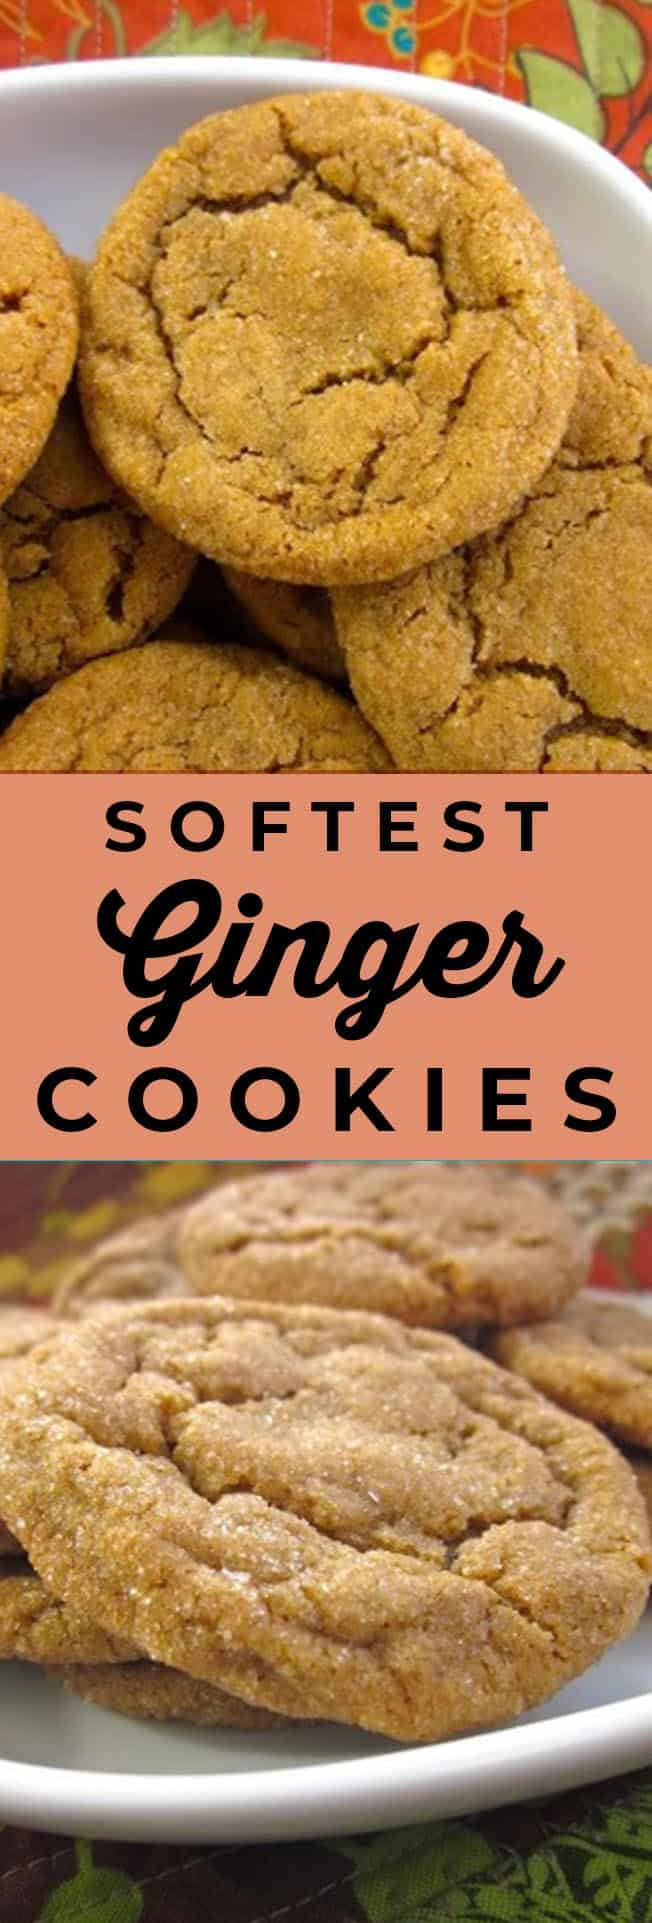 soft ginger cookies recipe